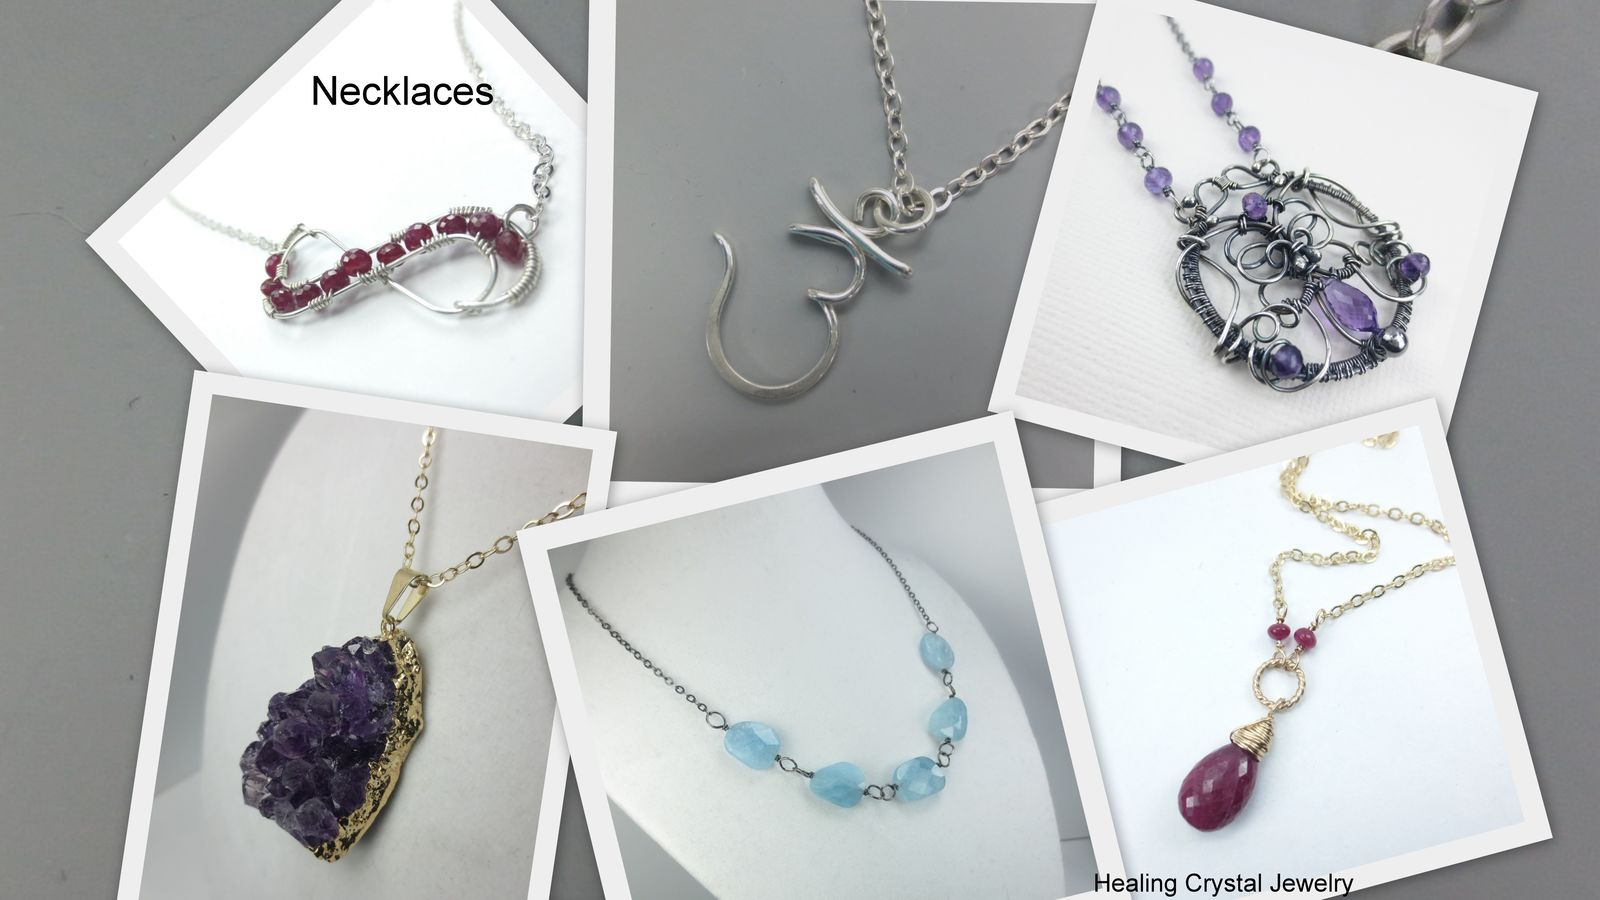 Healing Crystal Jewelry Gemstone necklaces